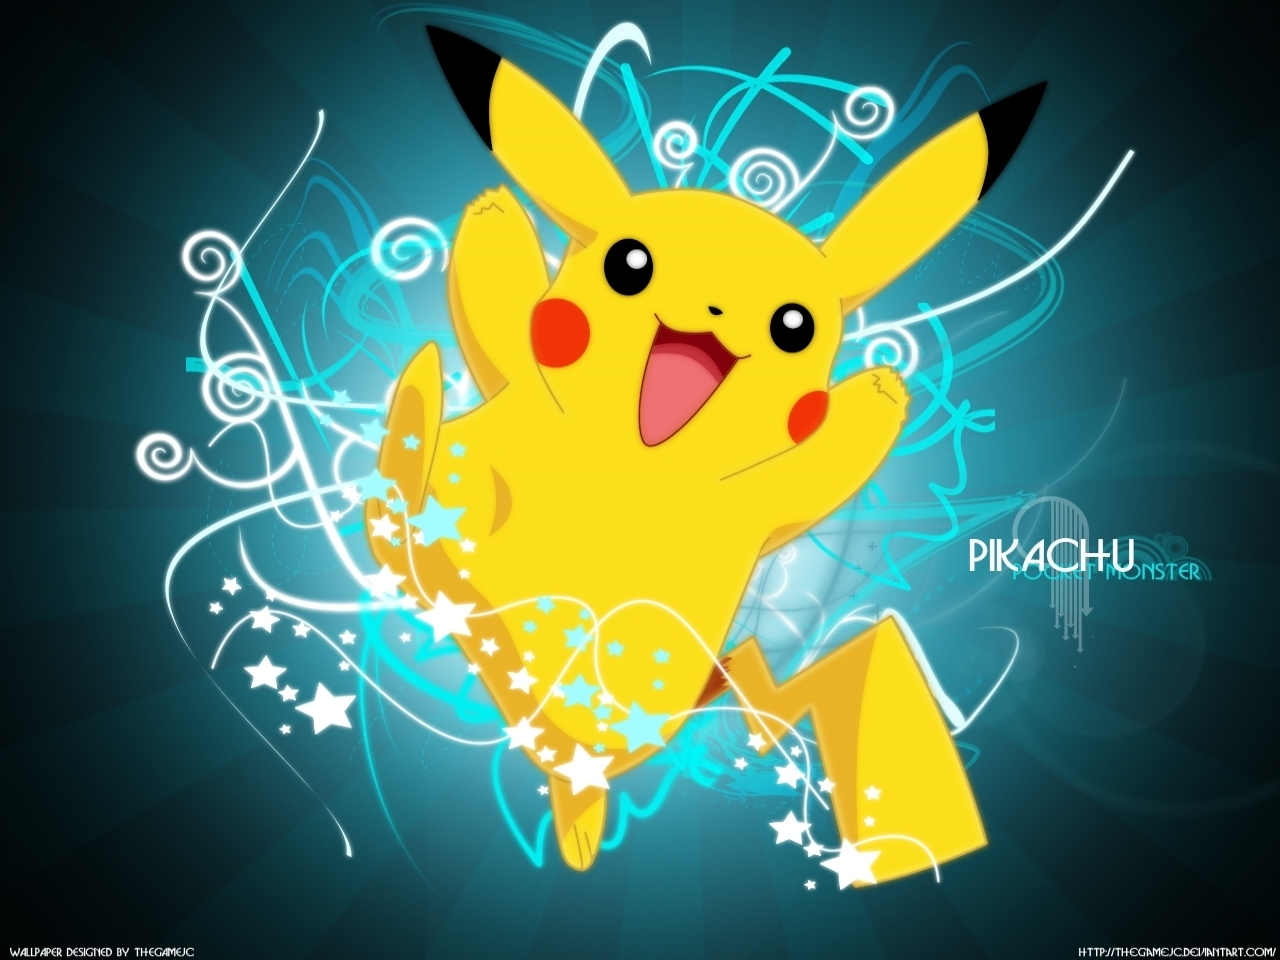 Electric Type Pokemon images pikachu wallpaper HD 1280x960